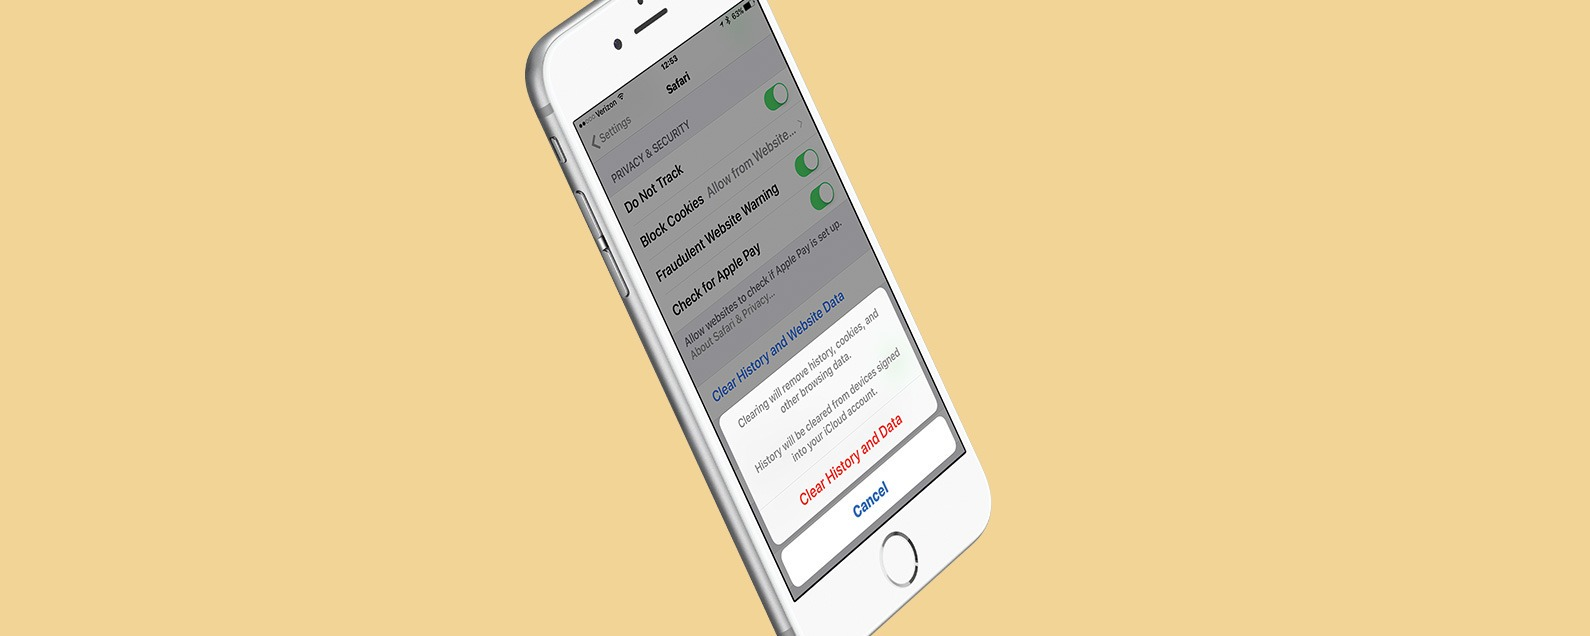 How to clear cookies from iphone ipad iphonelife when you delete cookies from your iphone or ipad you free up storage space and improve your devices performance speeds when you clear the cache and ccuart Choice Image